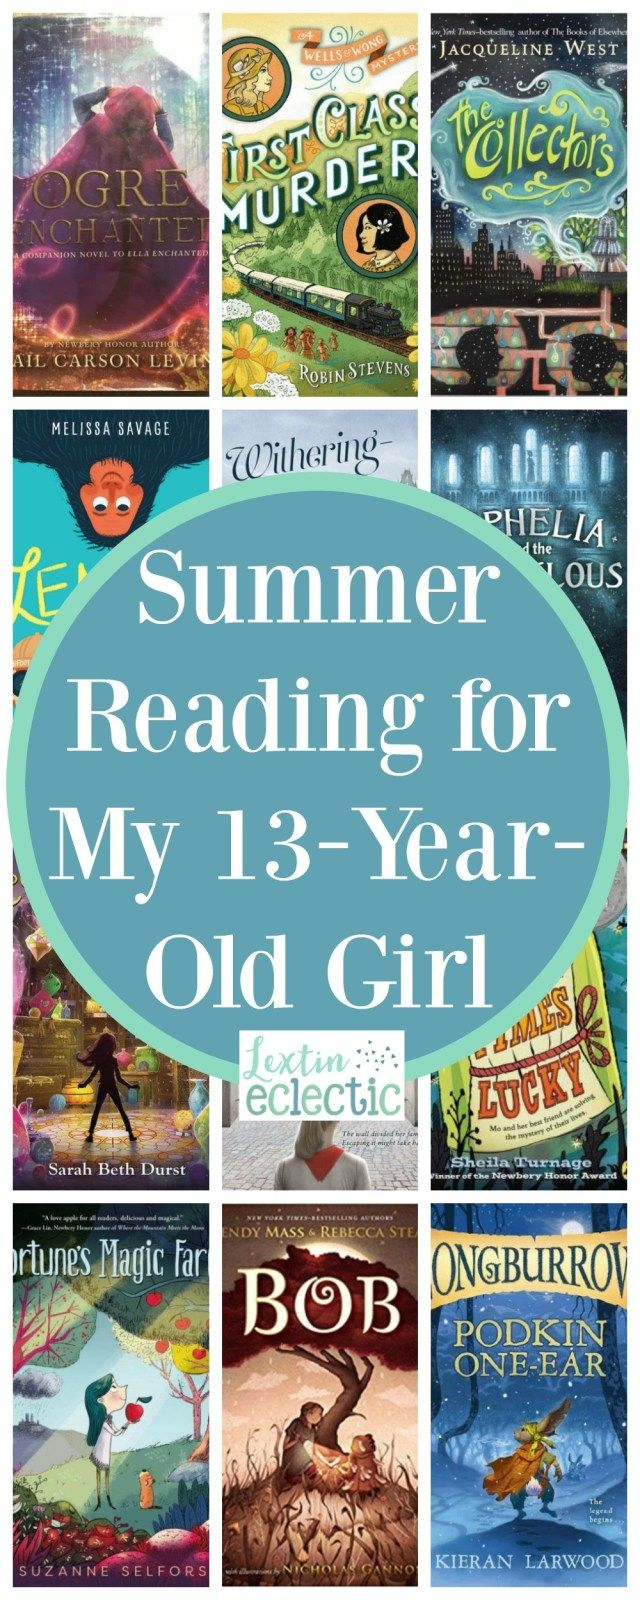 Summer Reading For My 13 Year Old Girl Lextin Eclectic Kids Summer Reading Summer Reading Books For Teens